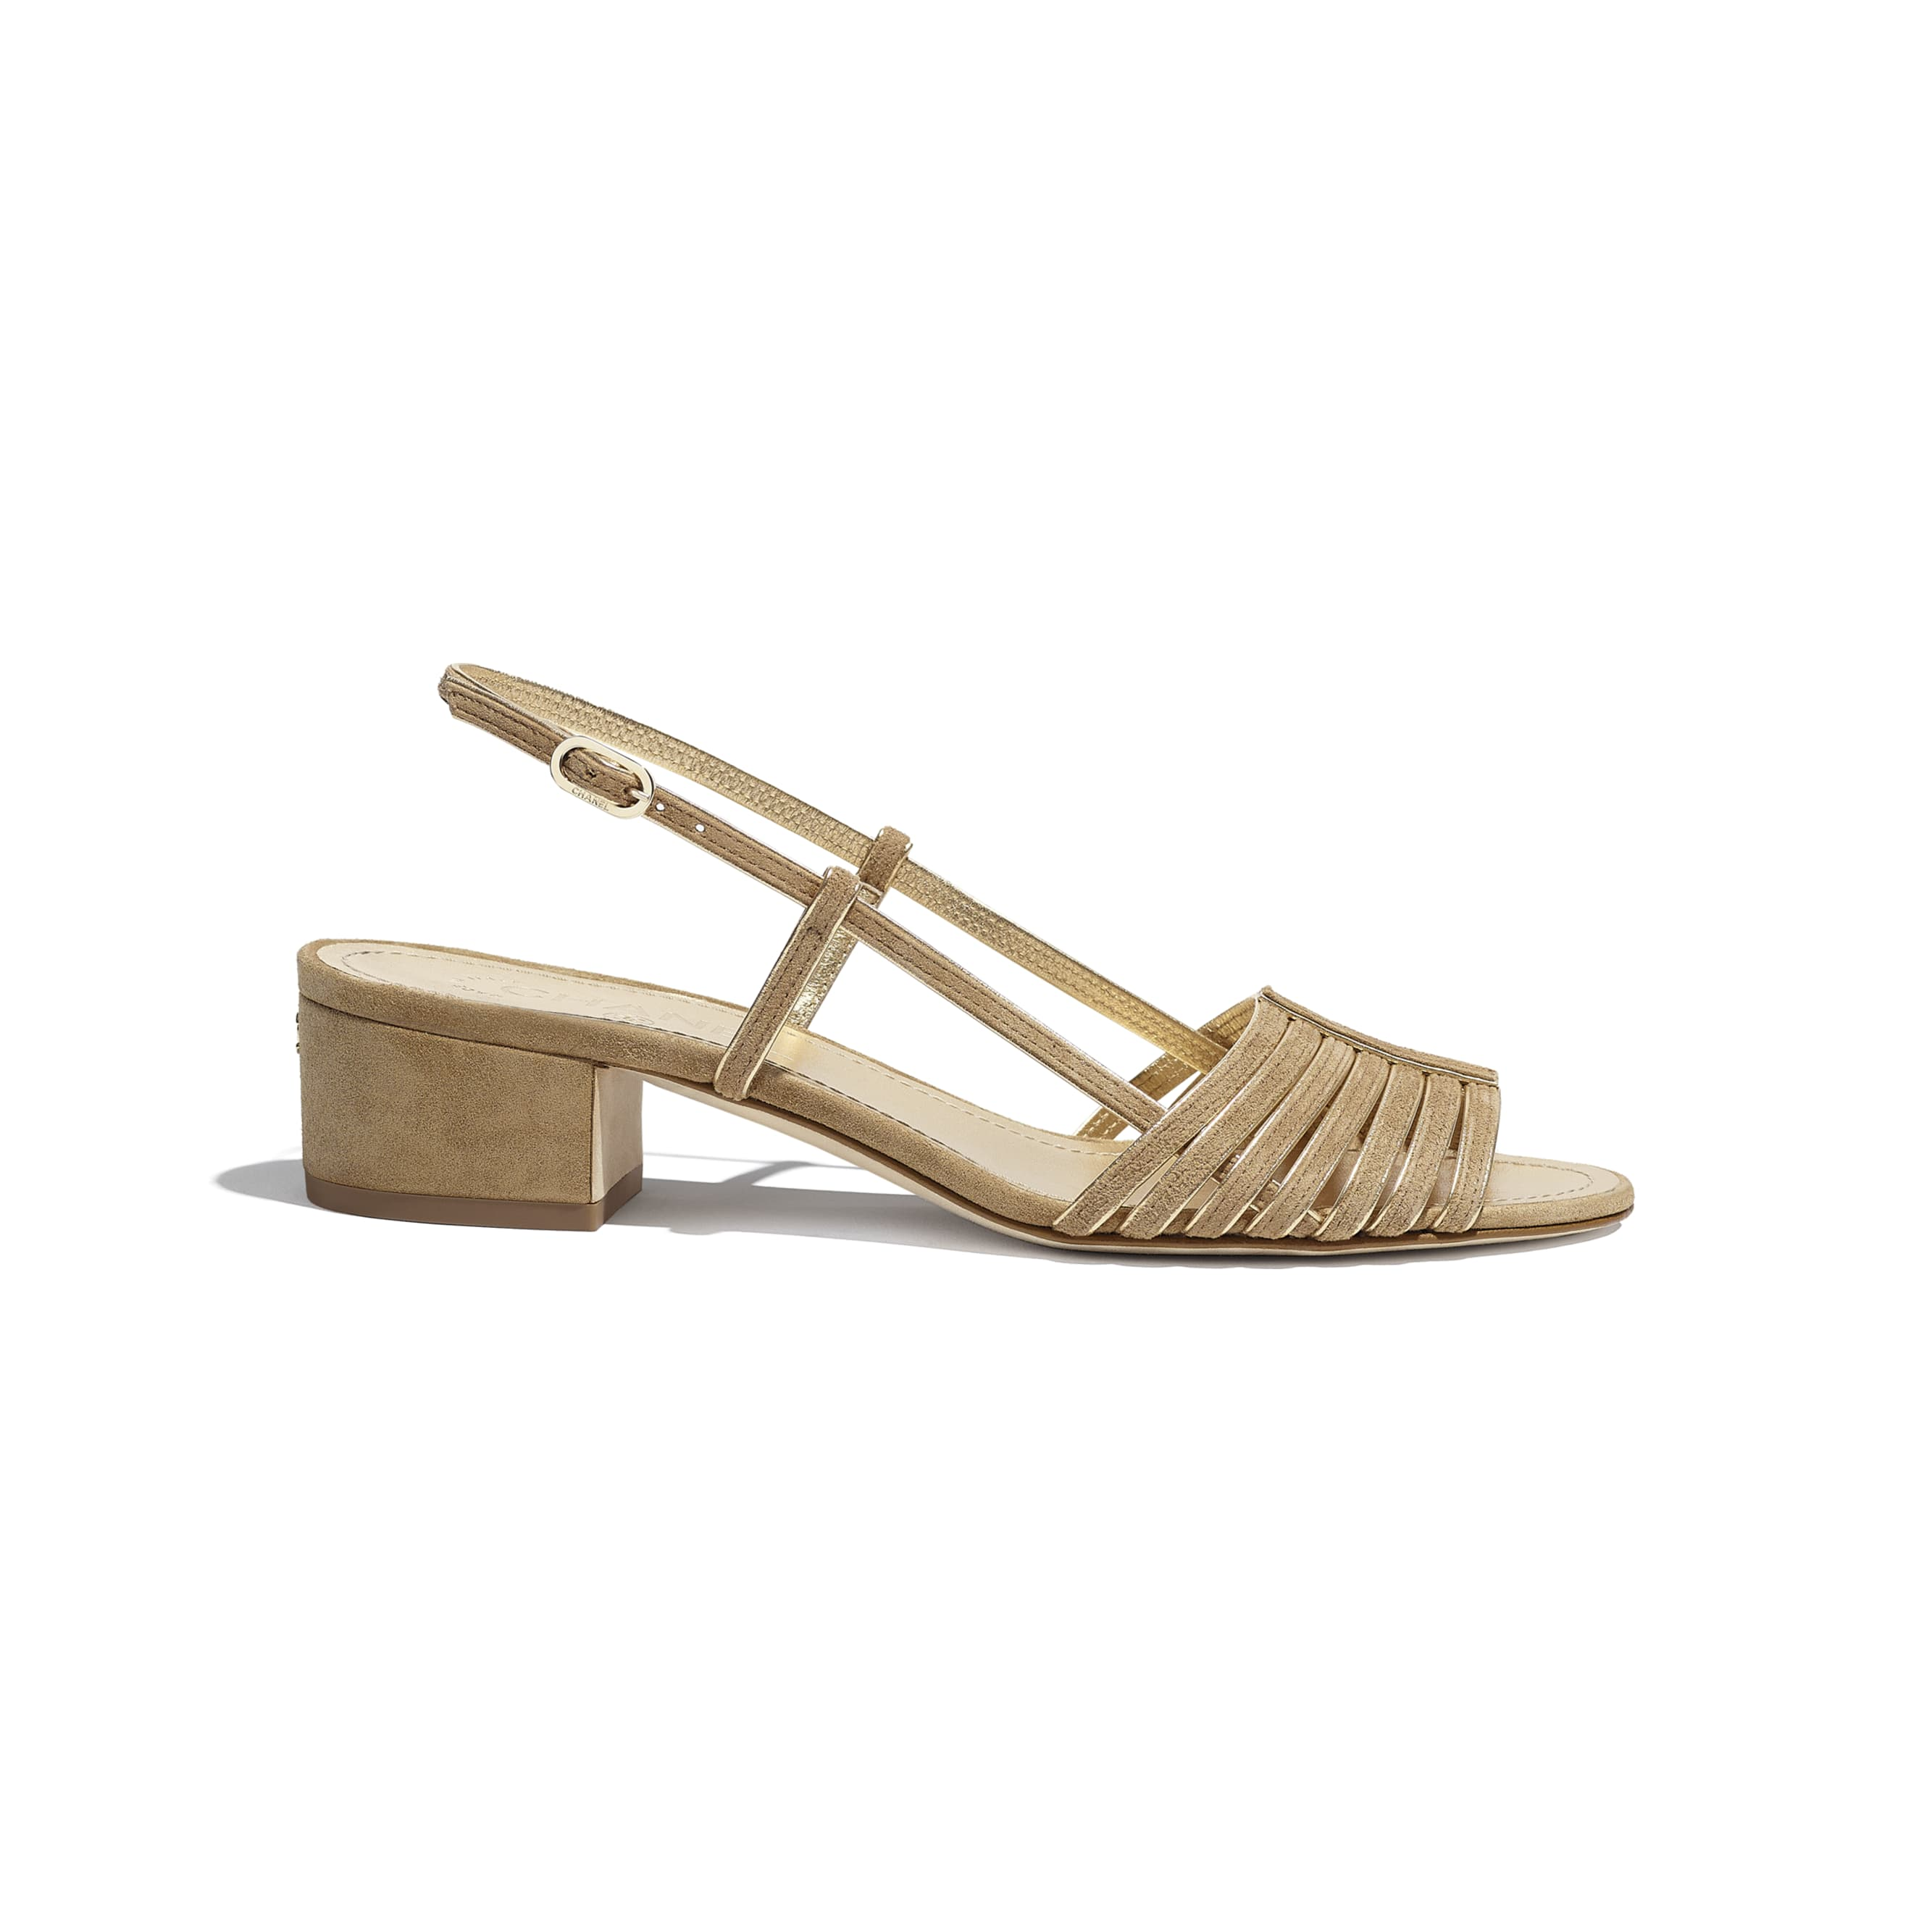 Sandals - Beige & Gold - Suede Kidskin - CHANEL - Default view - see standard sized version